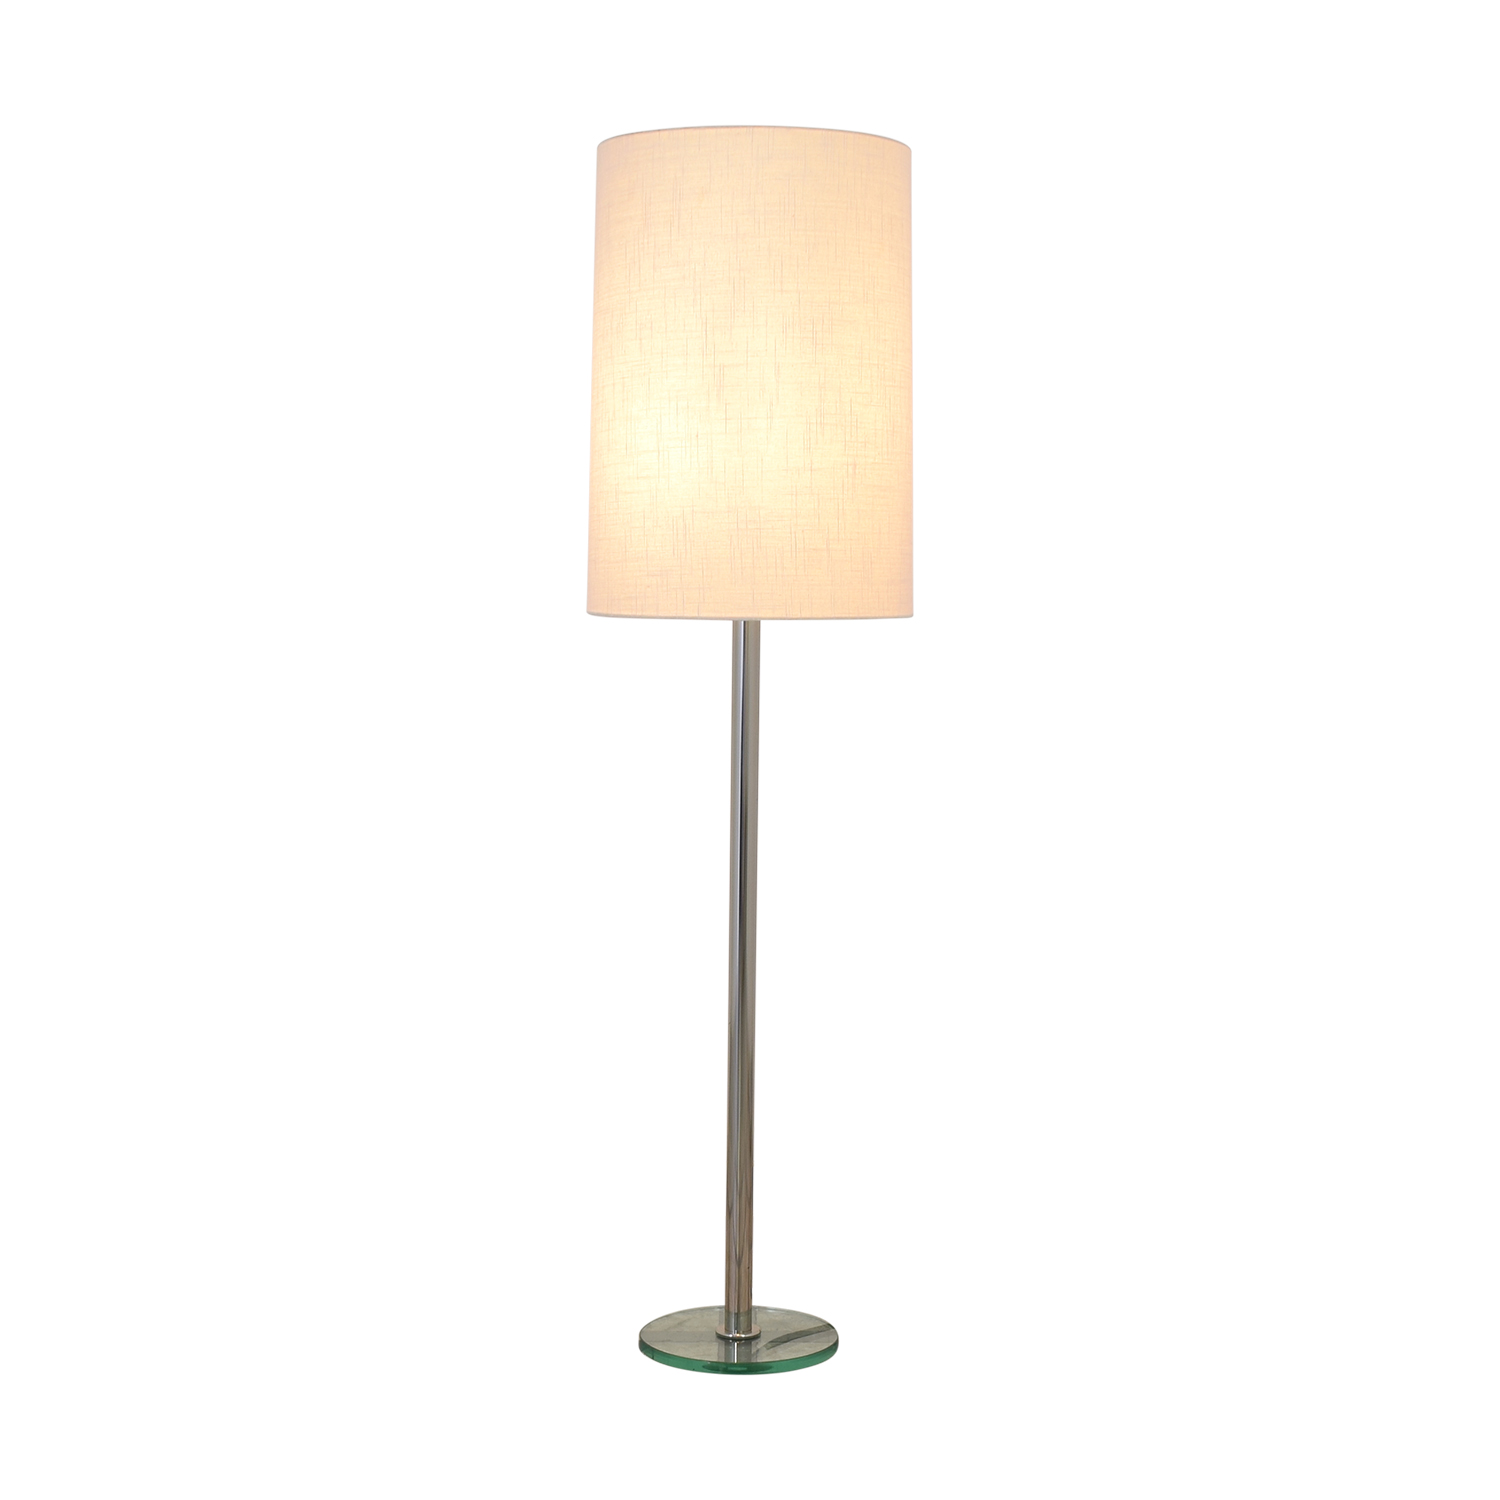 shop Crate & Barrel Claire Floor Lamp Crate & Barrel